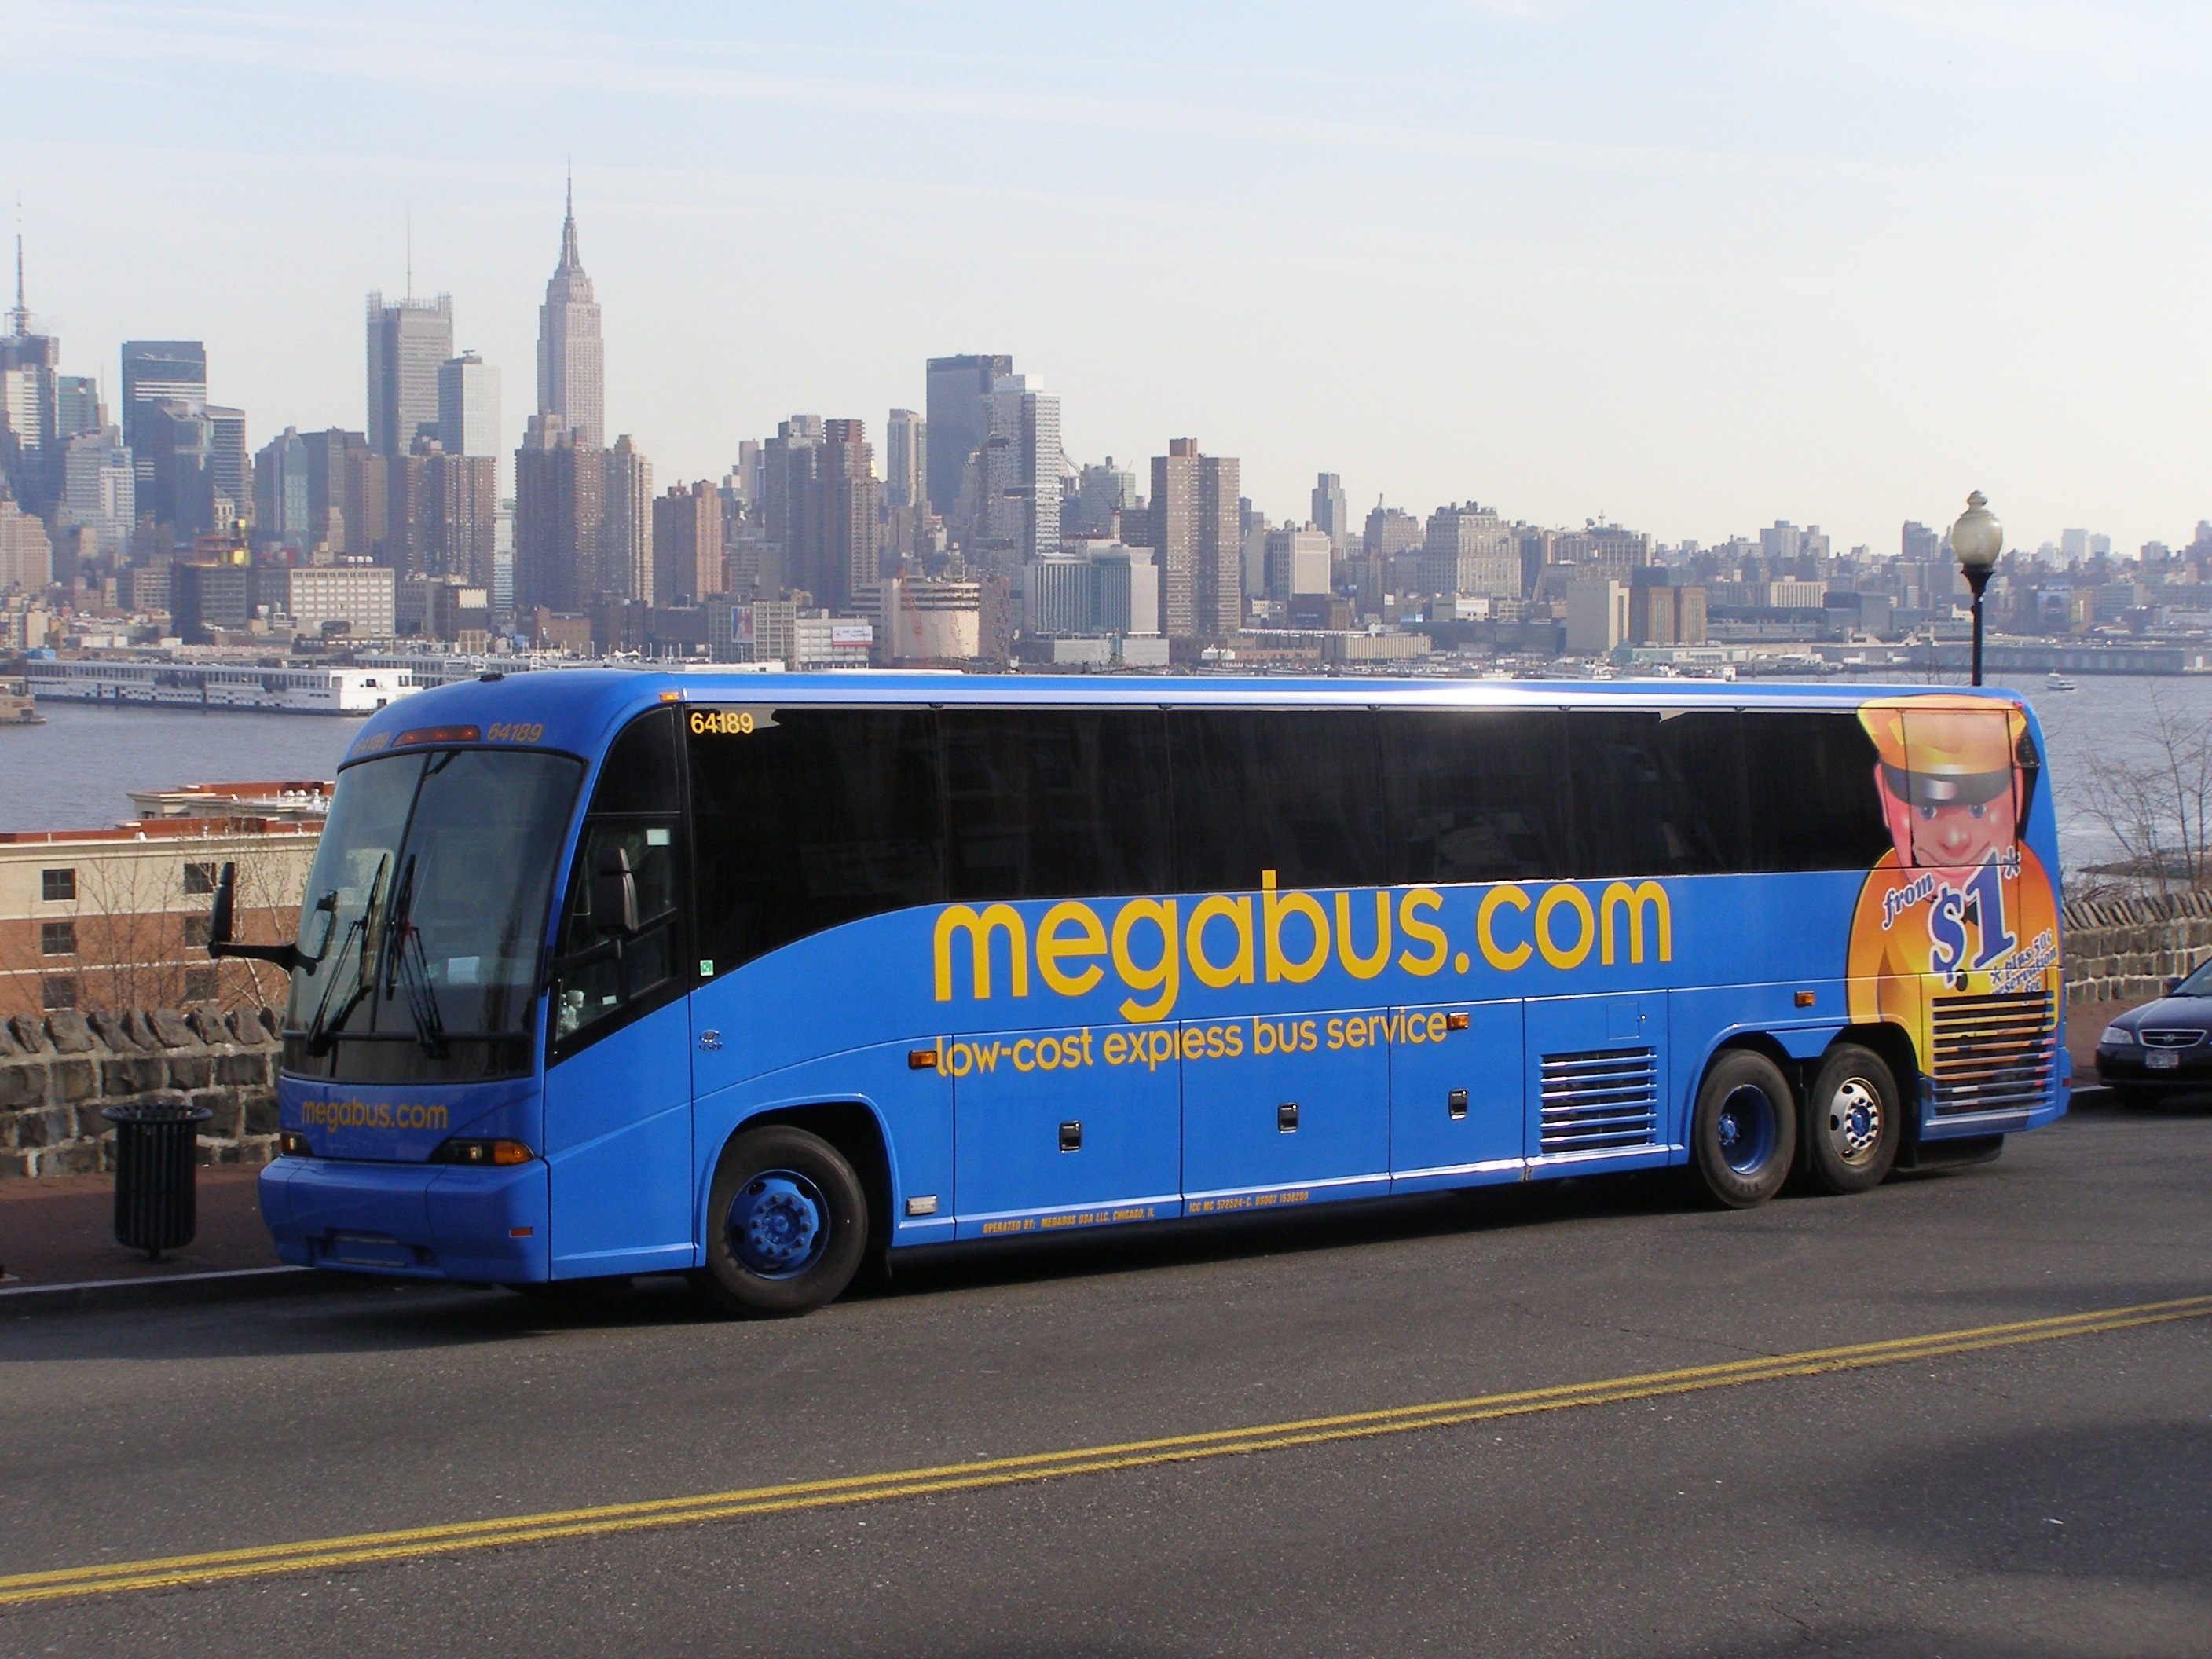 Can you share your experiences with Megabus? - Quora